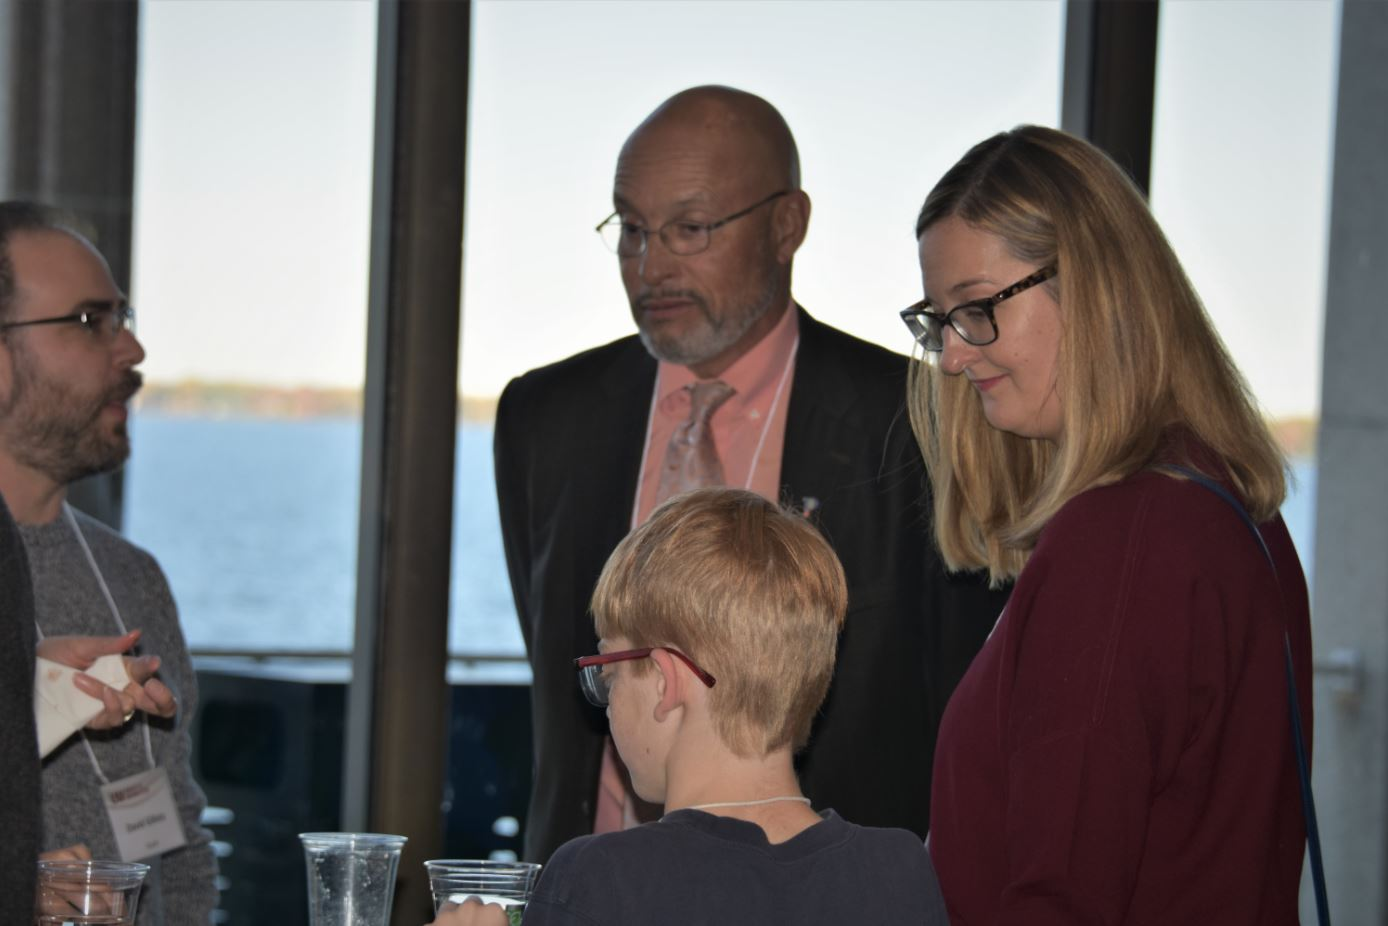 Provost Dennis Shields and Amanda Tucker with a boy